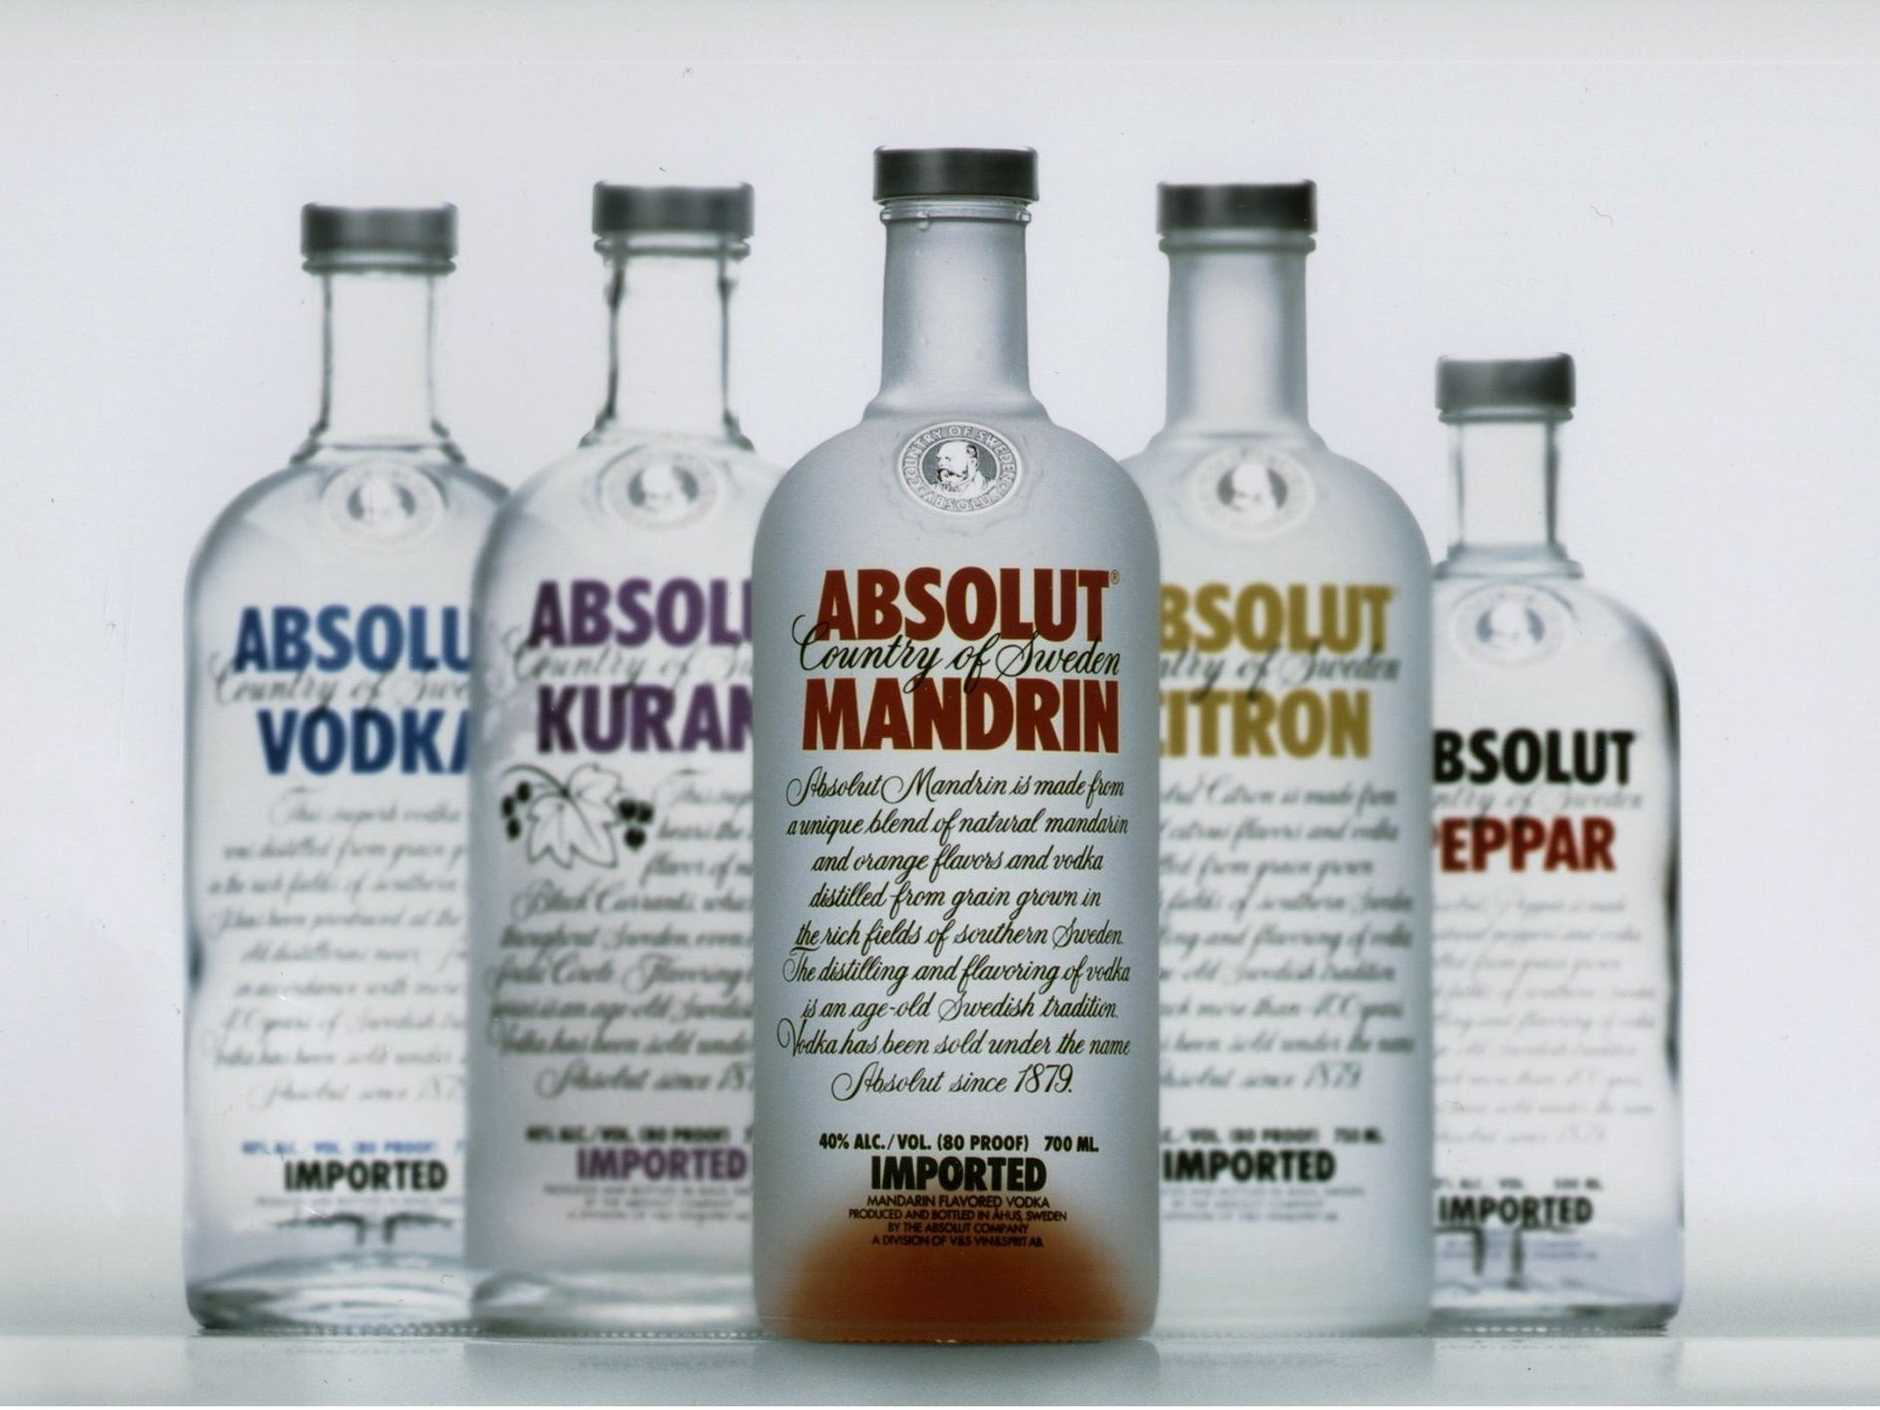 The moggy was administered Absolut Vodka intravenously.